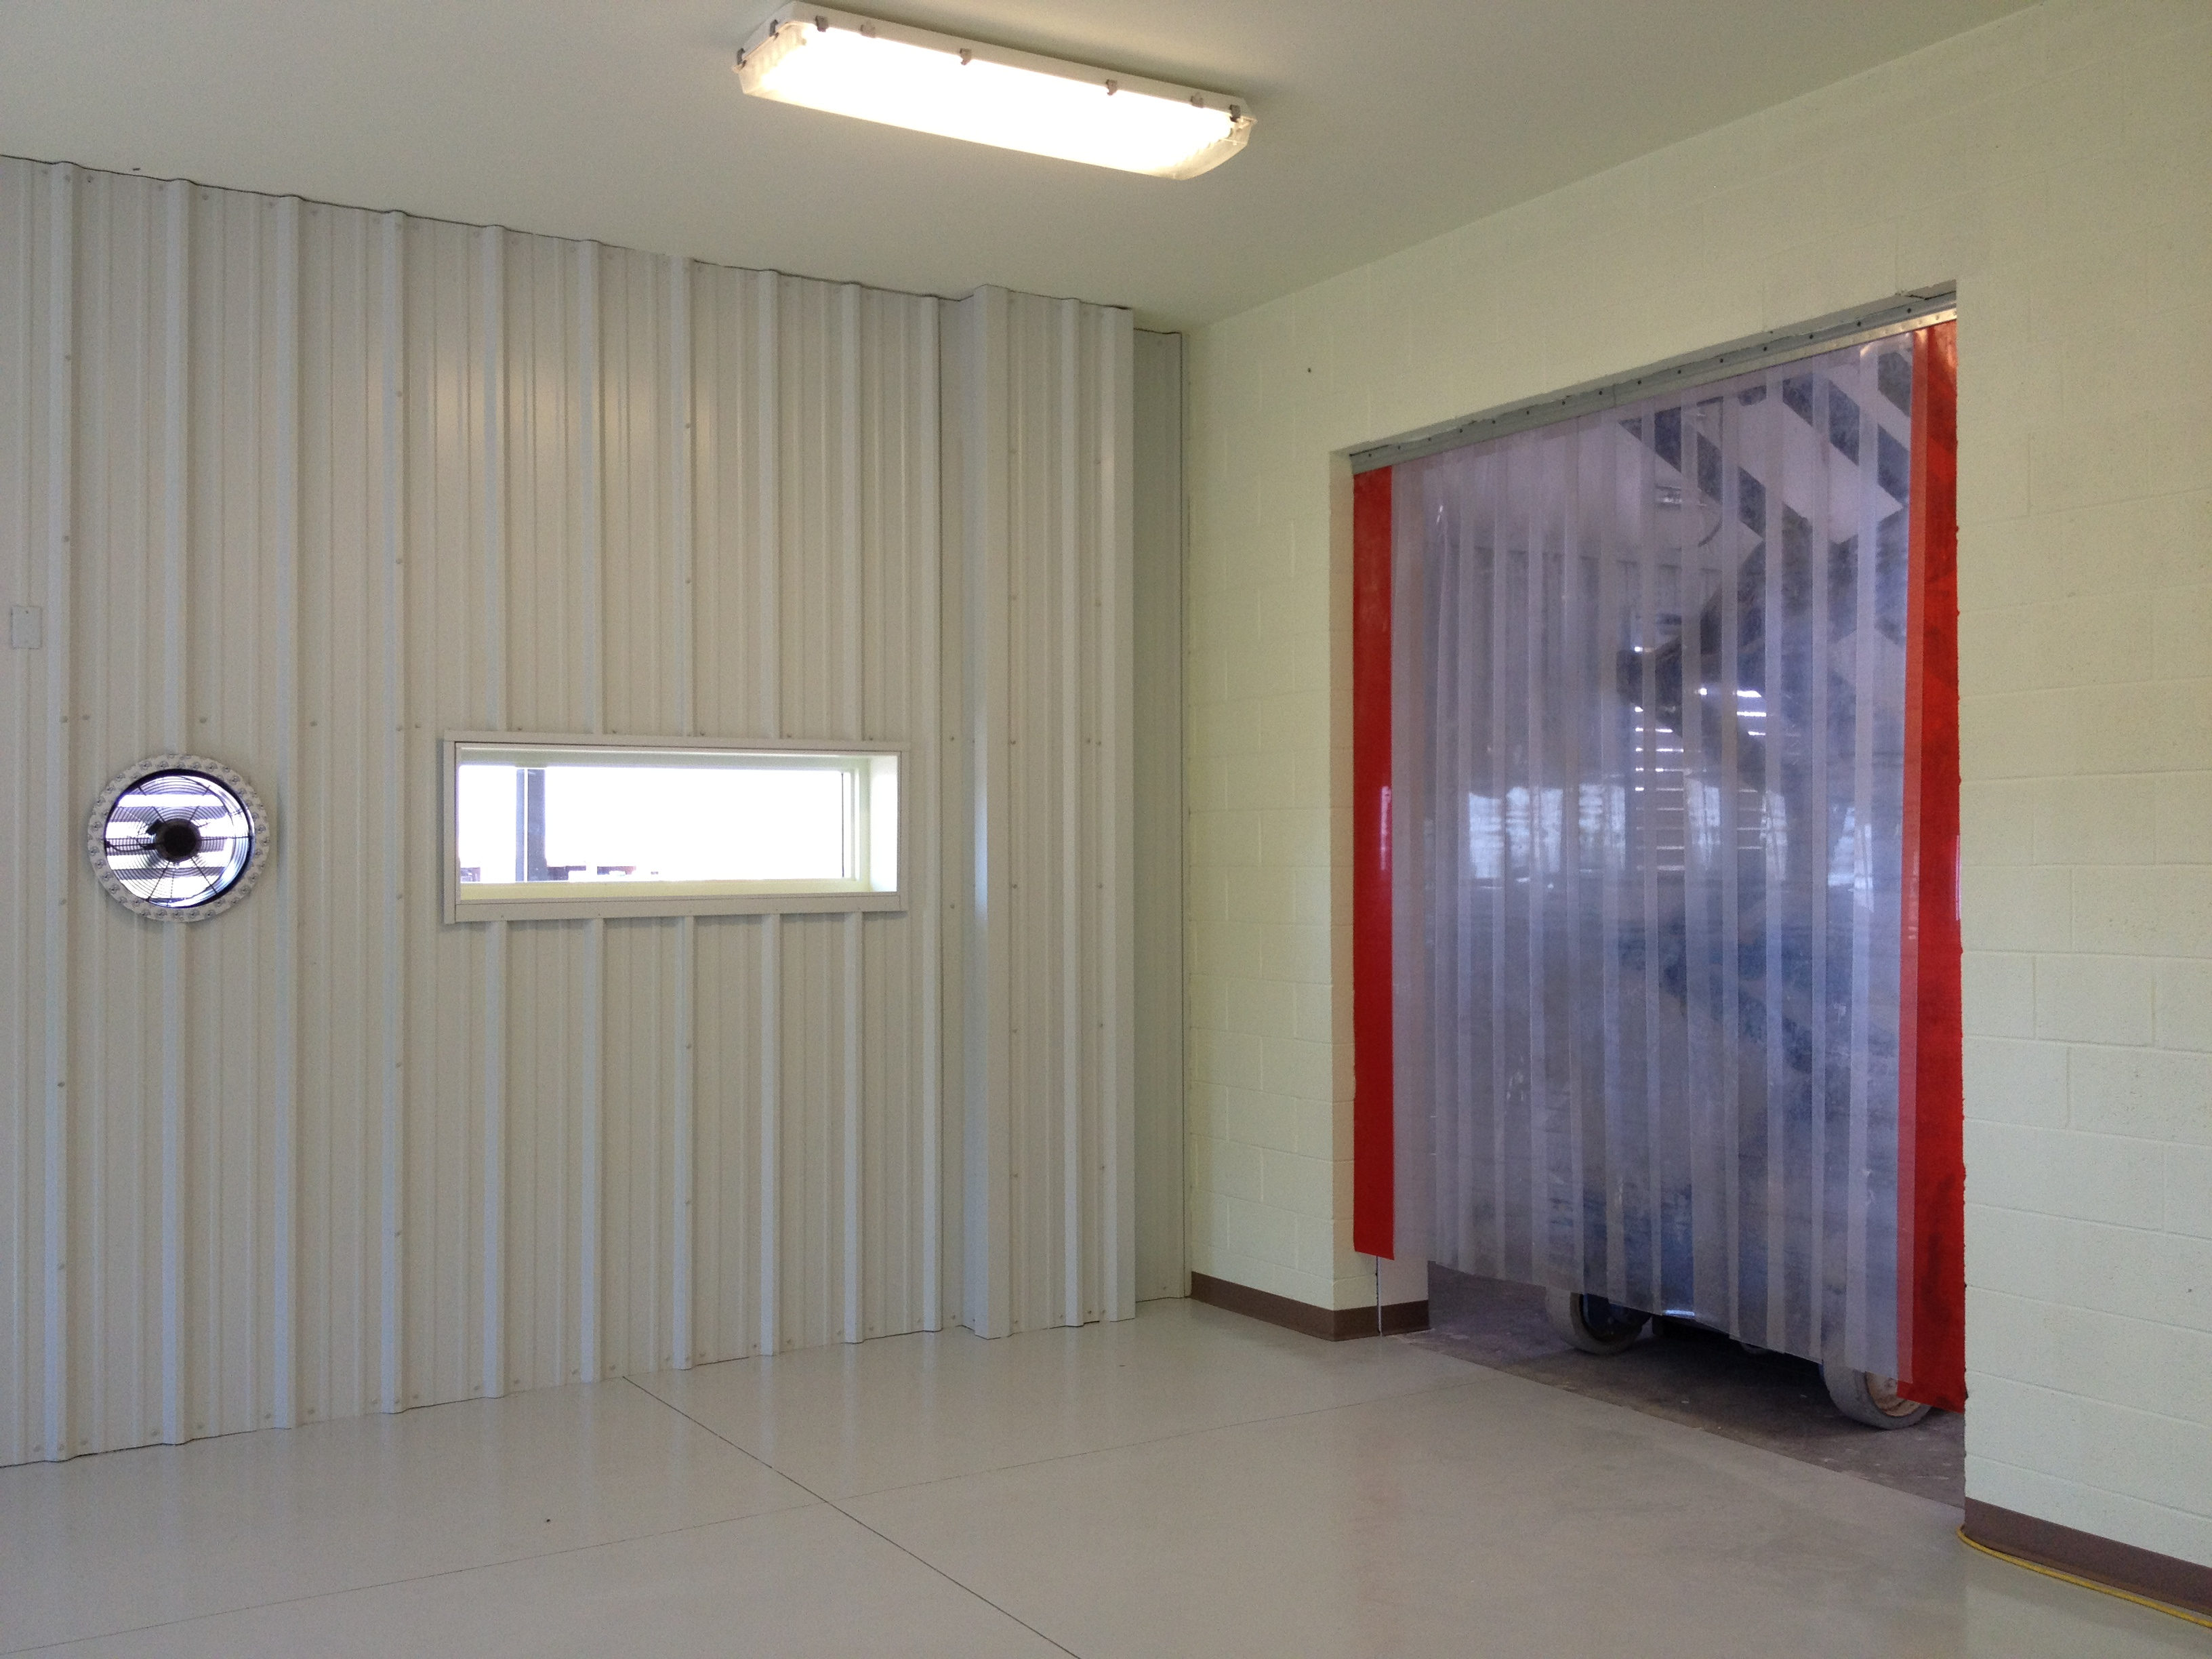 Installation of the Air Curtain